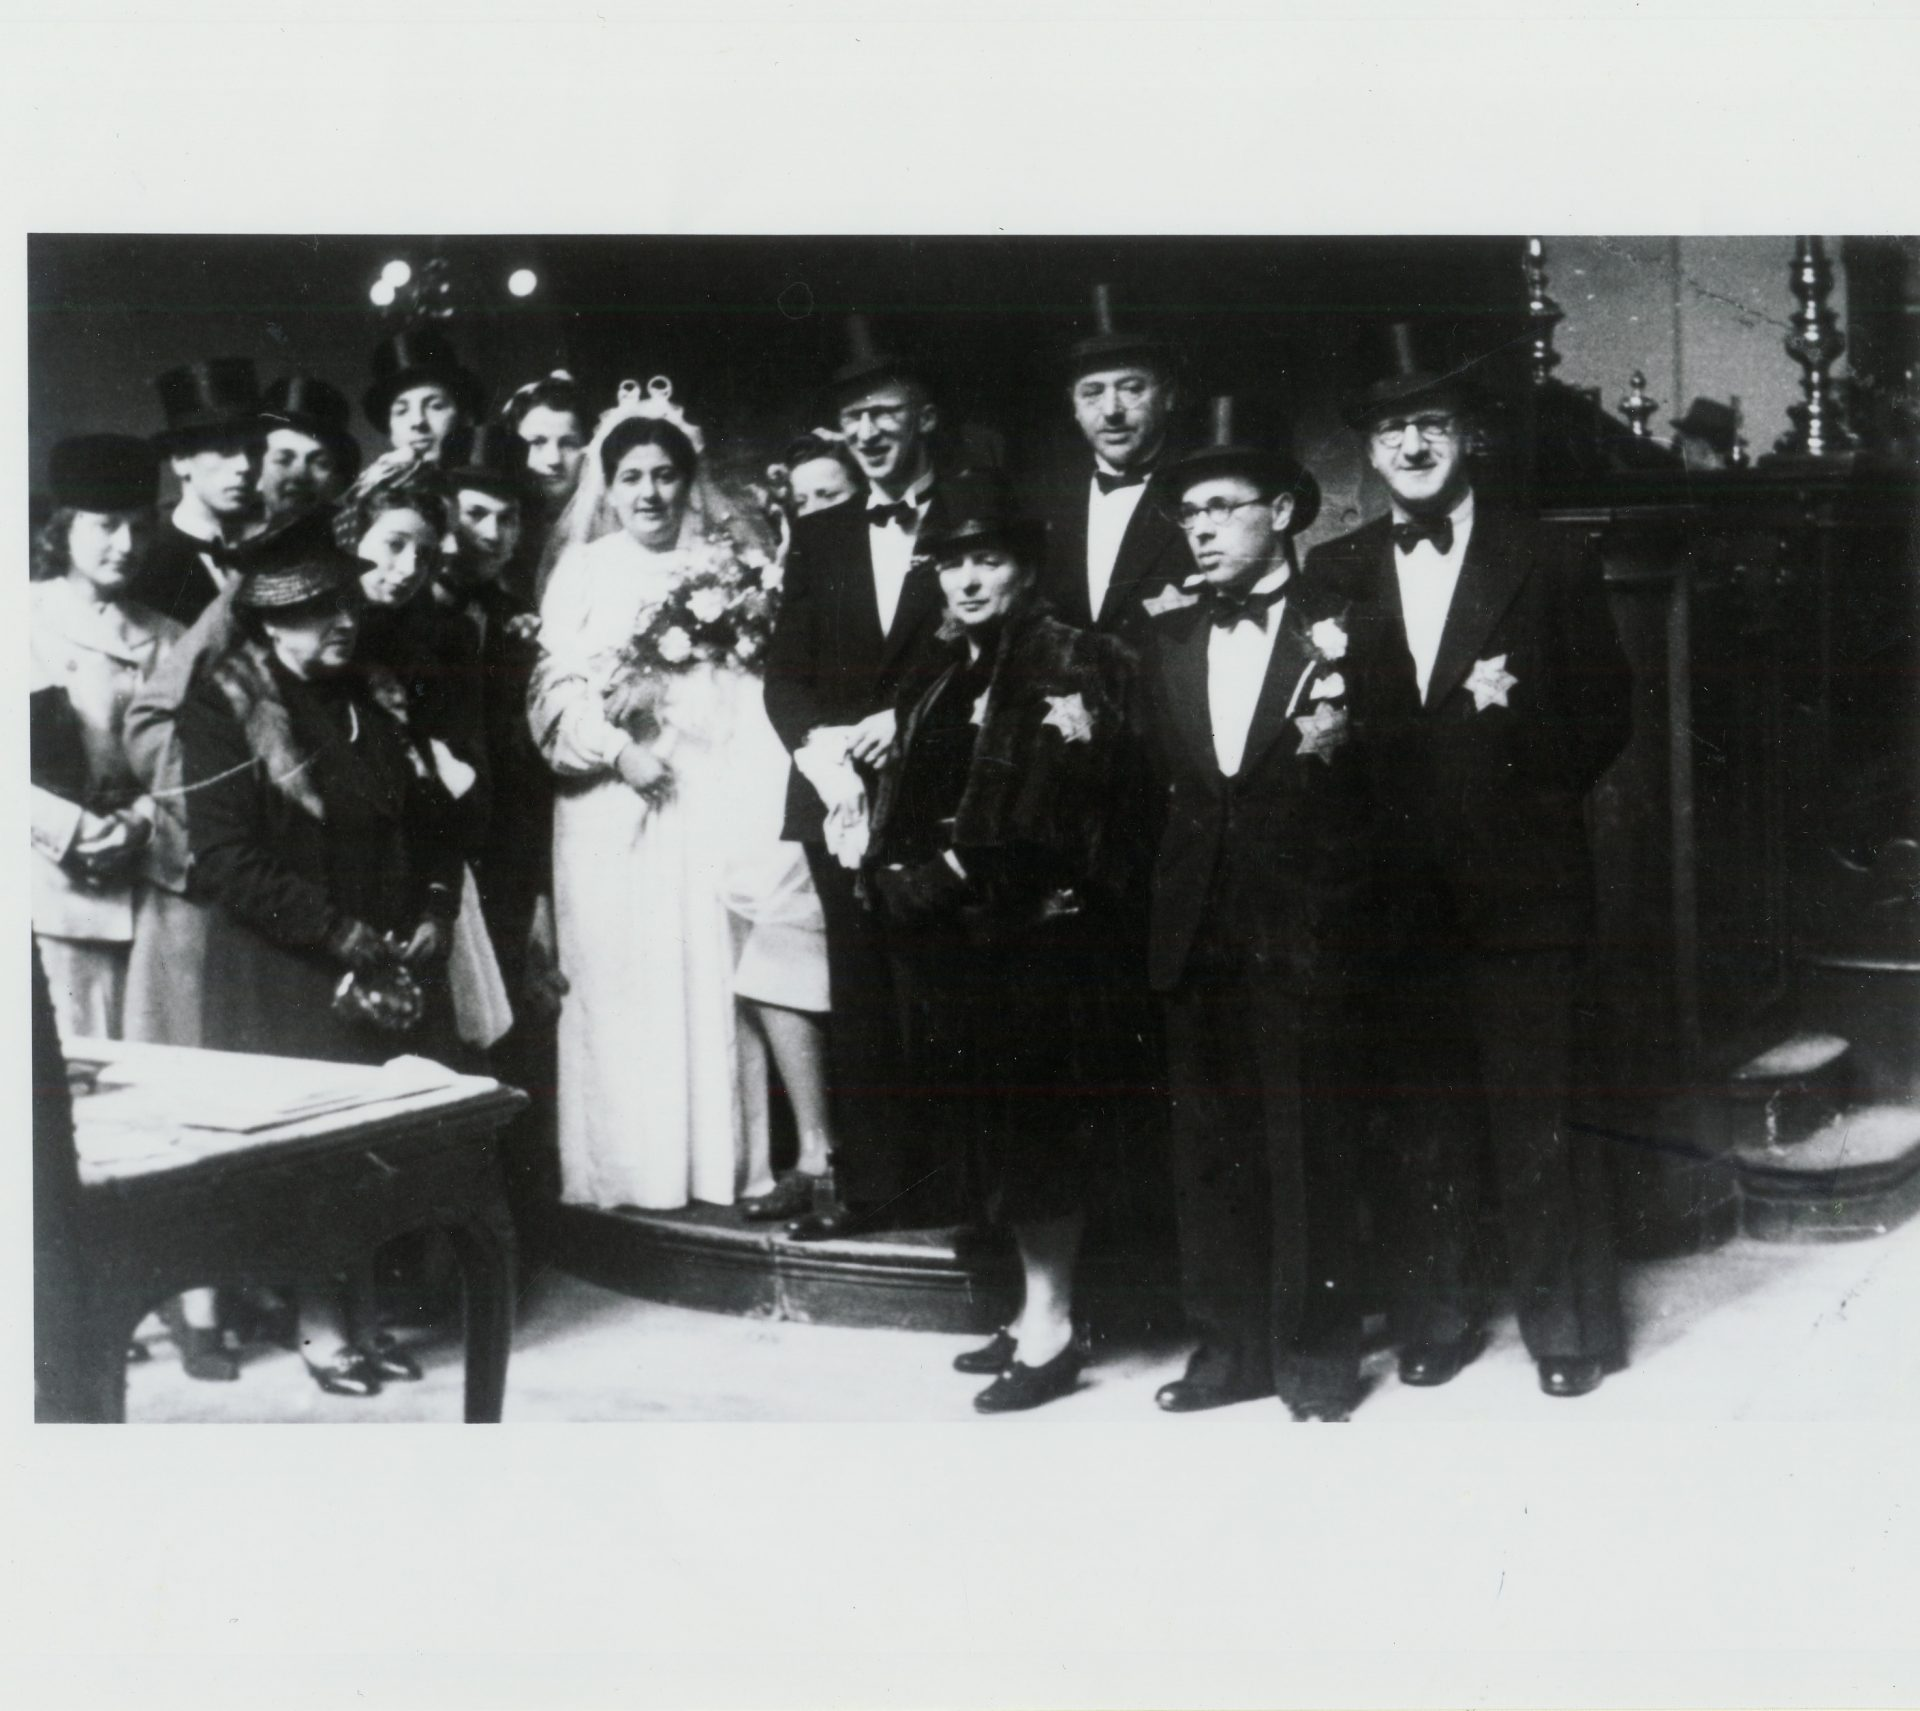 Photo of the wedding of Herman Leeuw and Annie Pais, with their families present, 1942. Despite everything, the Jews continued to live as normally as possible.